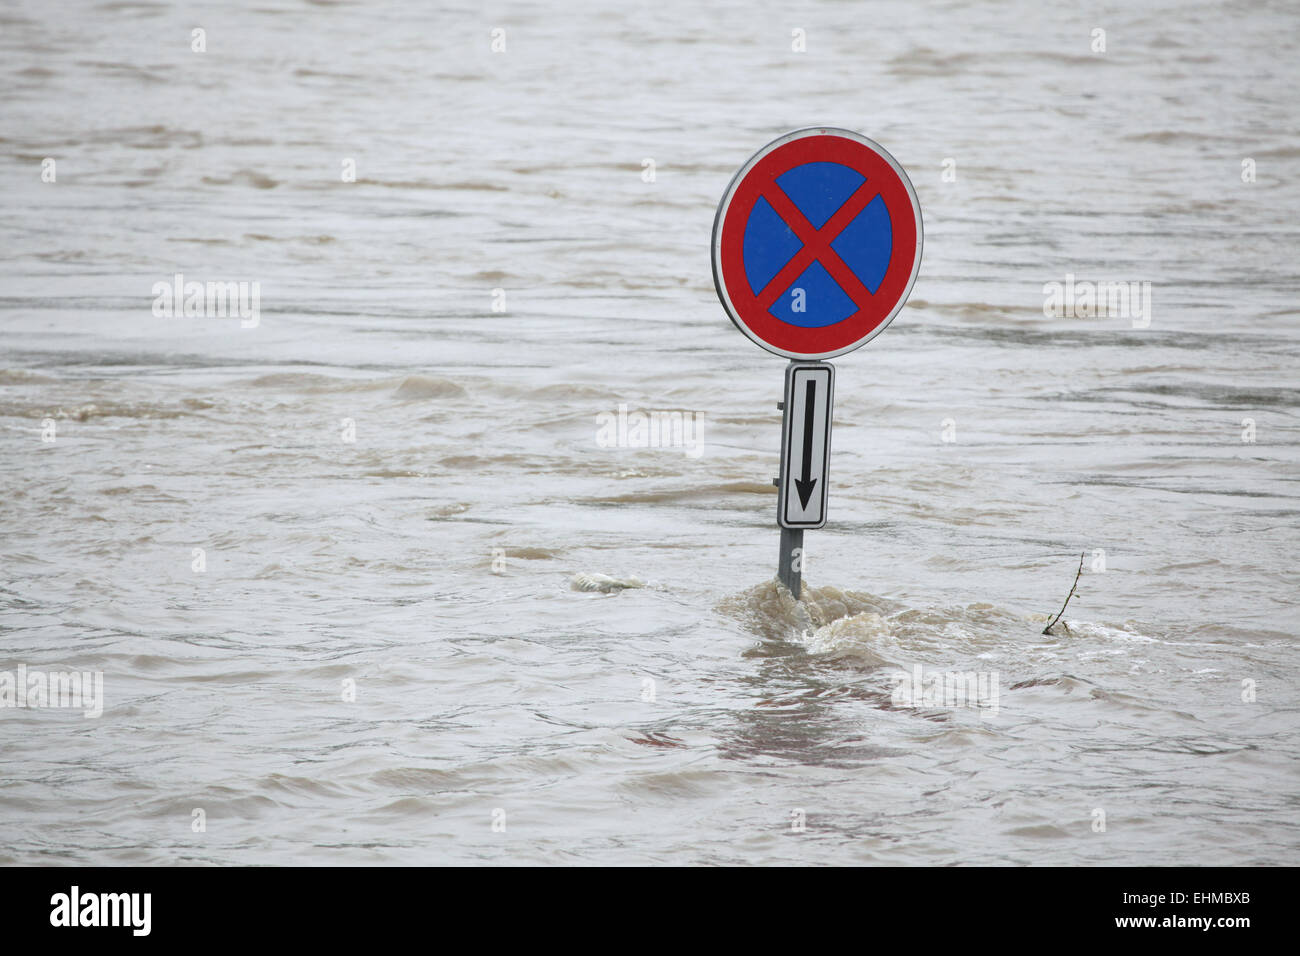 No stopping, a traffic sign partially flooded by the swollen Vltava River in Prague, Czech Republic. - Stock Image